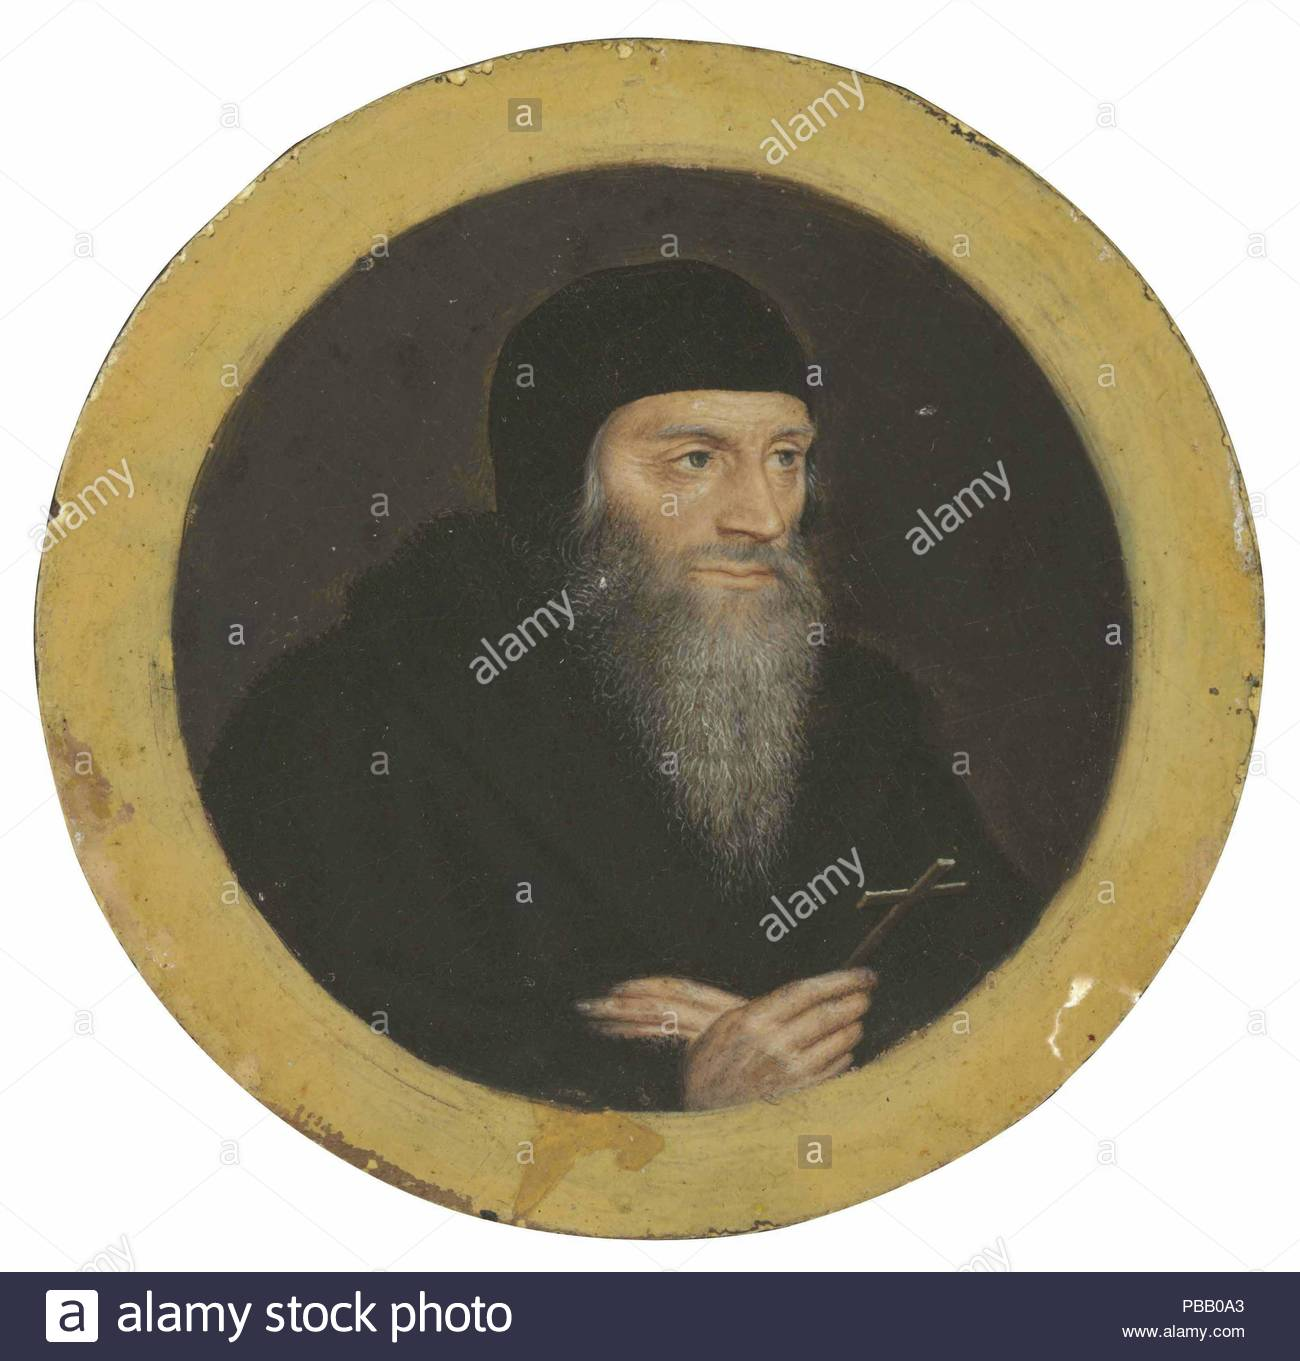 Portrait of Sir Thomas More as he was led to execution. Museum: PRIVATE COLLECTION. - Stock Image